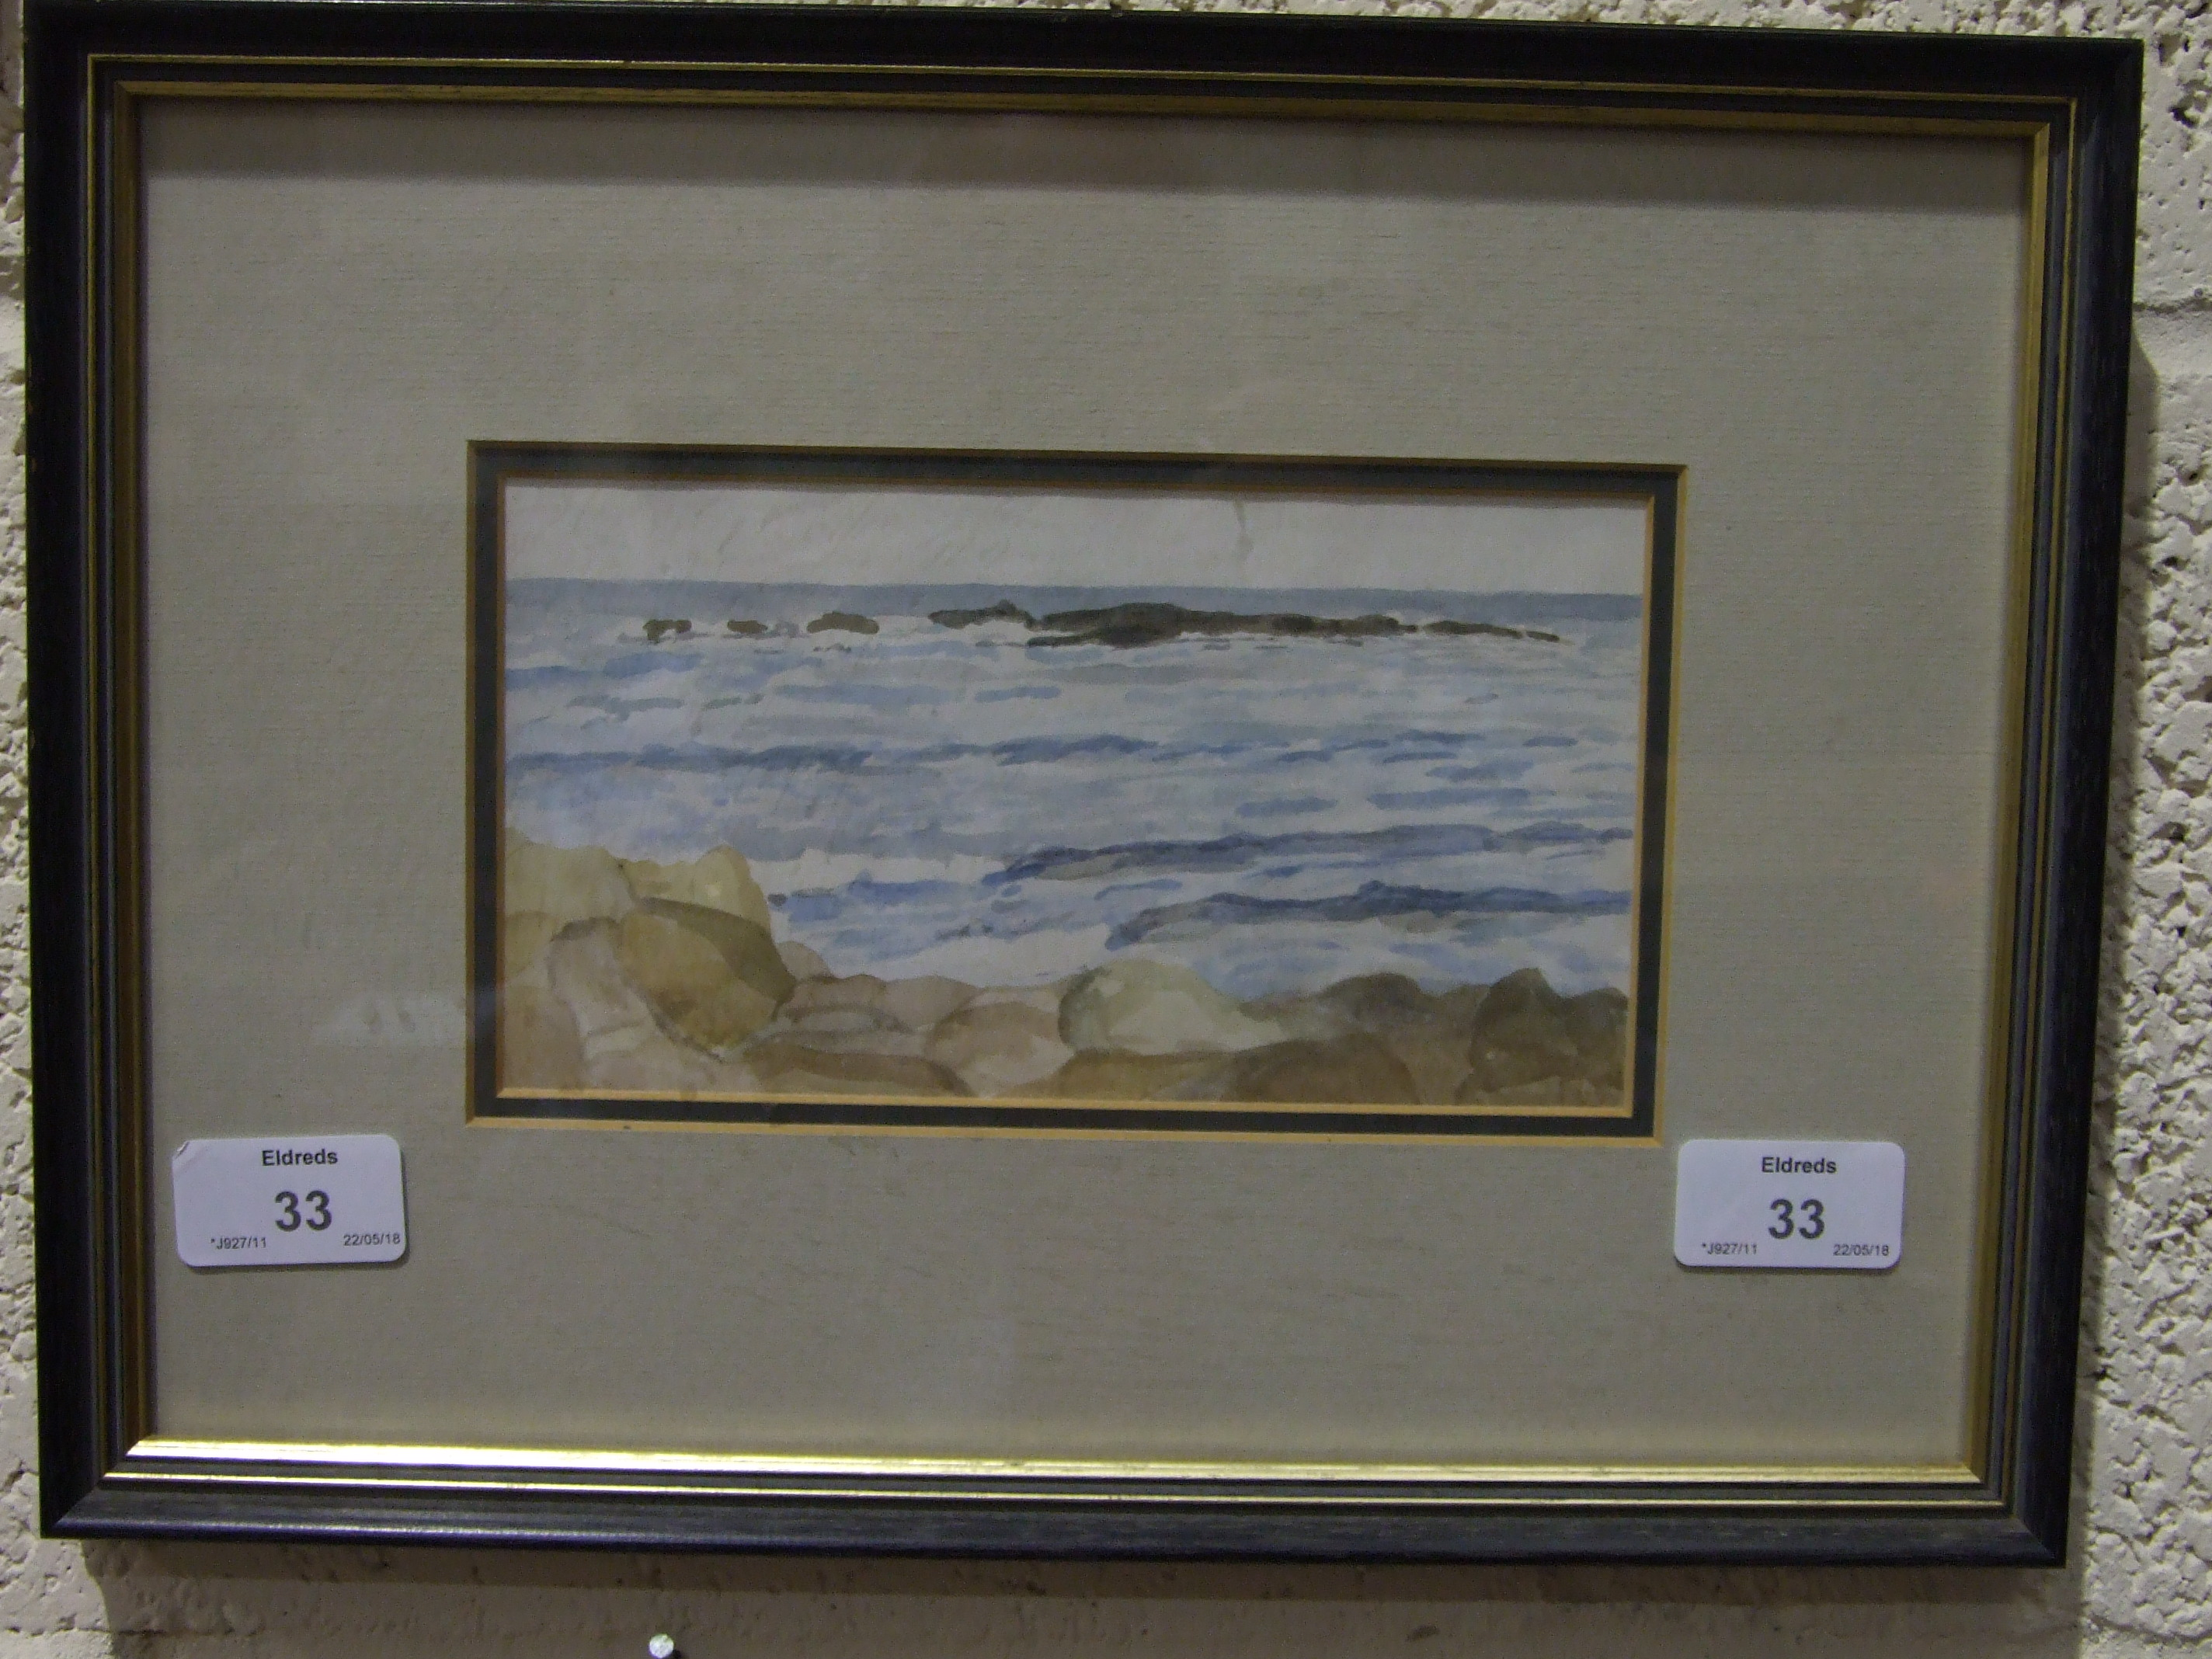 T C Gotch WAVES BREAKING ON A SHORELINE Watercolour sketch, signed with initials, 10 x 19cm, - Image 2 of 2